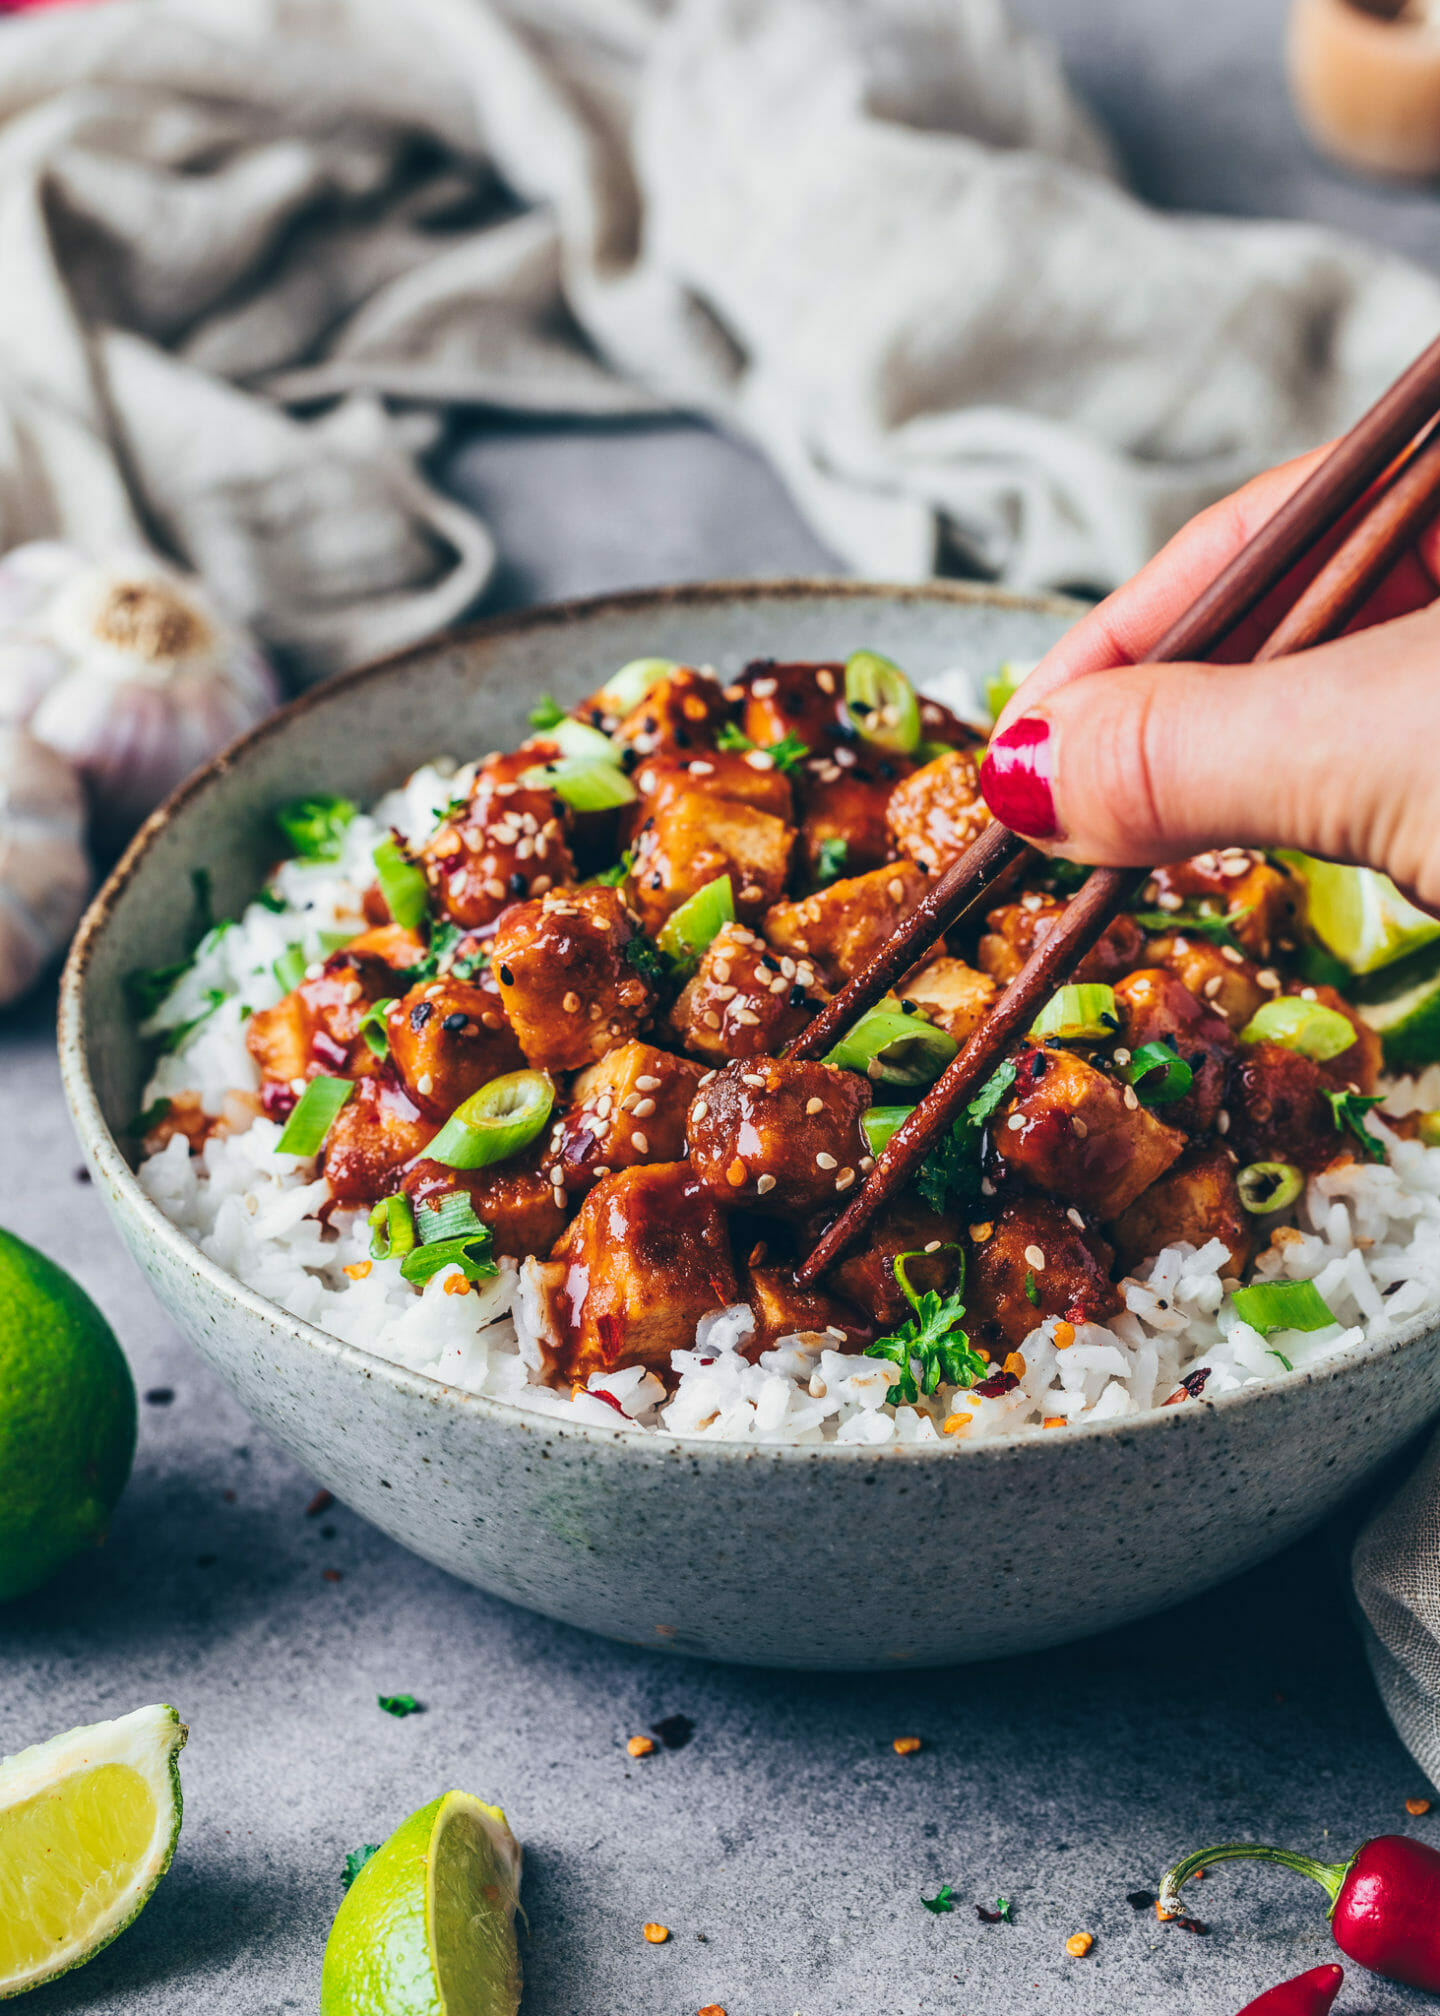 Spicy Tofu with sticky General Tso's sauce